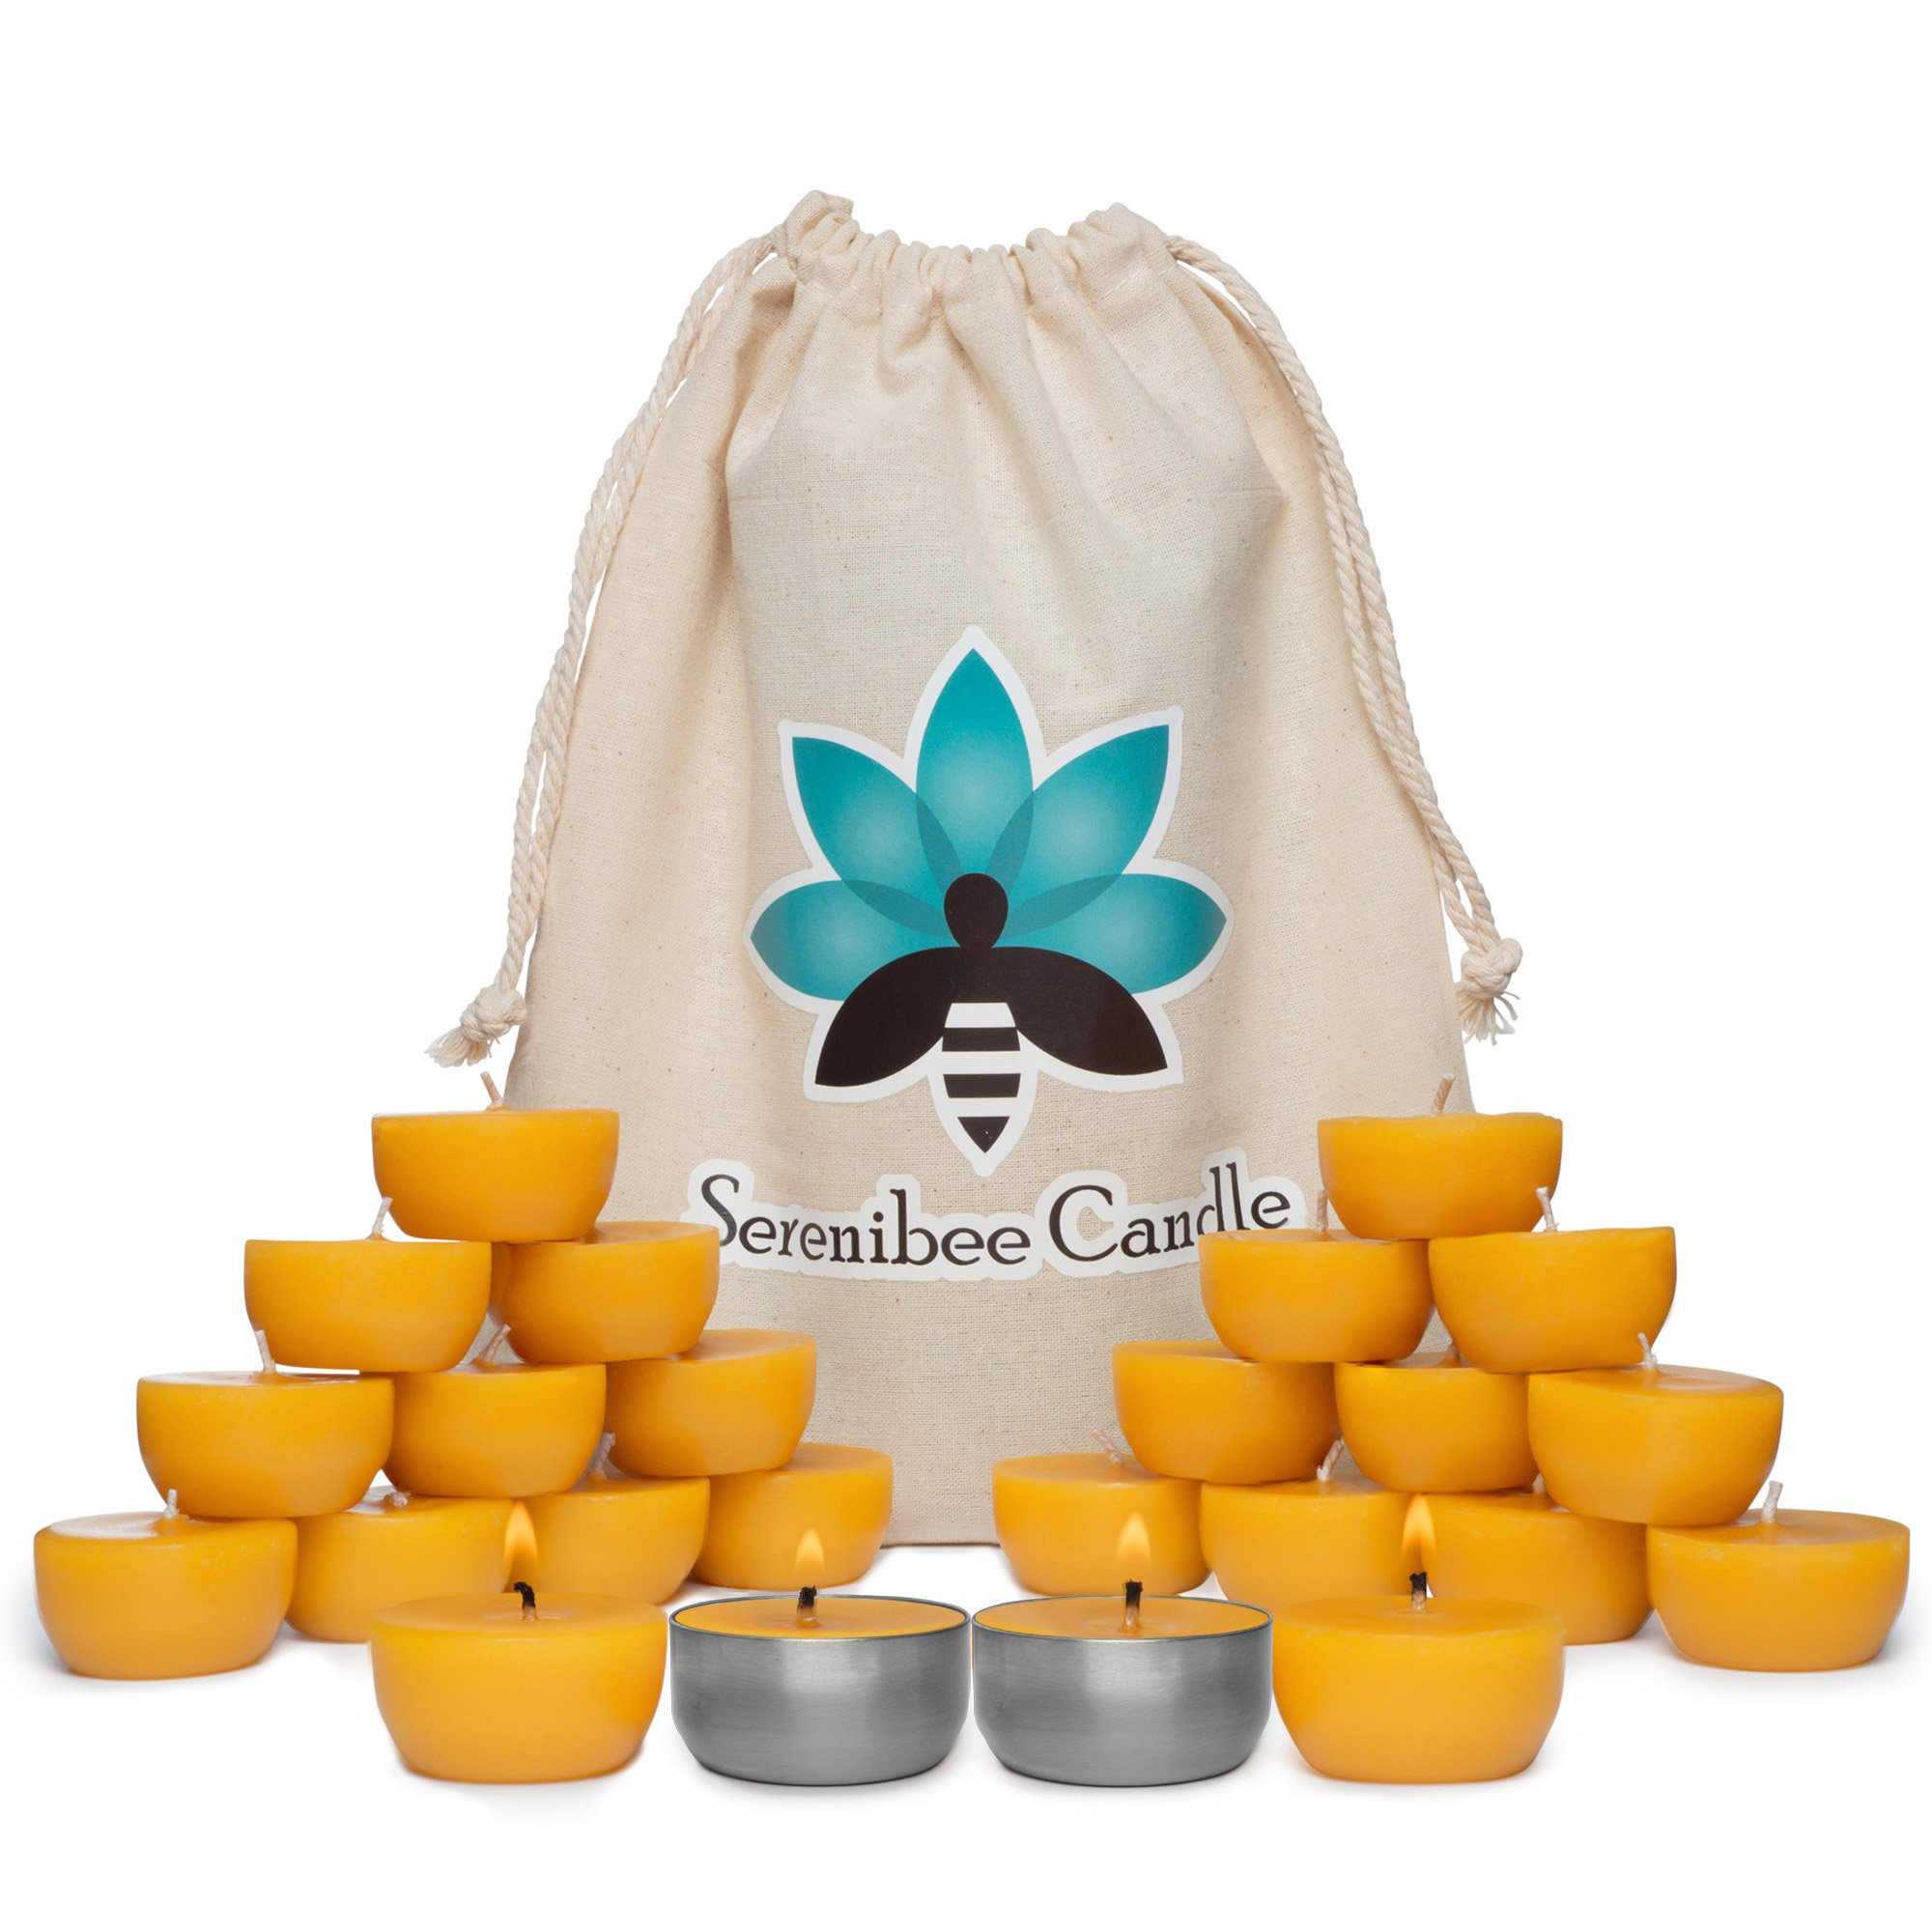 Beeswax Tea Light Candles Refills with Two Custom Reusable Sturdy Steel Candle Holders and Reusable Cotton Bag Eco Friendly Gift Set(24) by Serenibee Candle